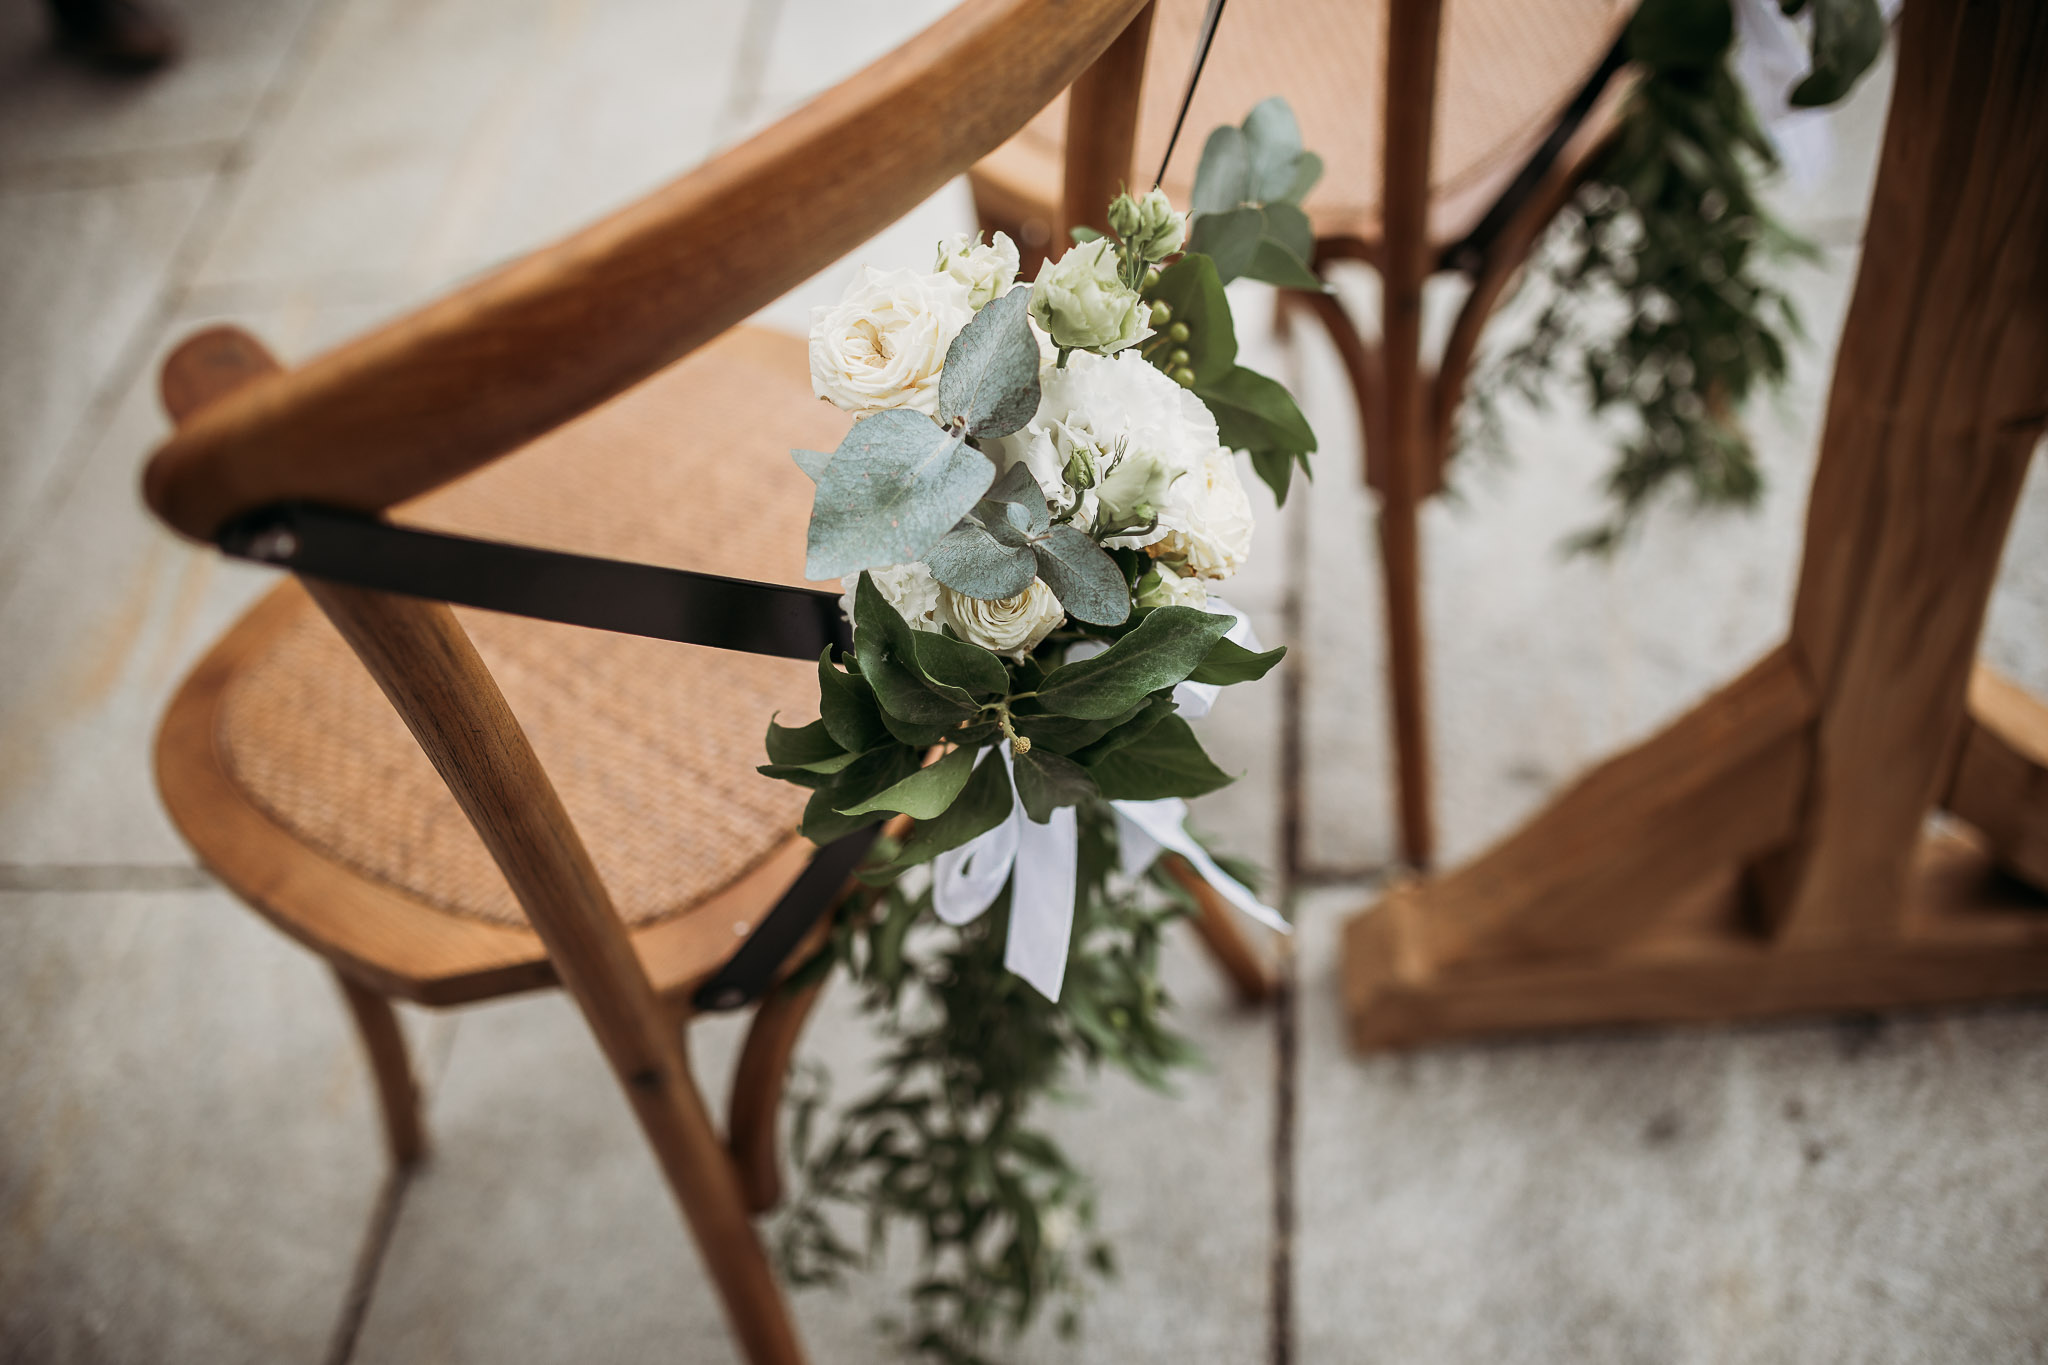 Decorated chairs with white flowers and greenery for wedding ceremony at La Villa Hotel, Mombaruzzo